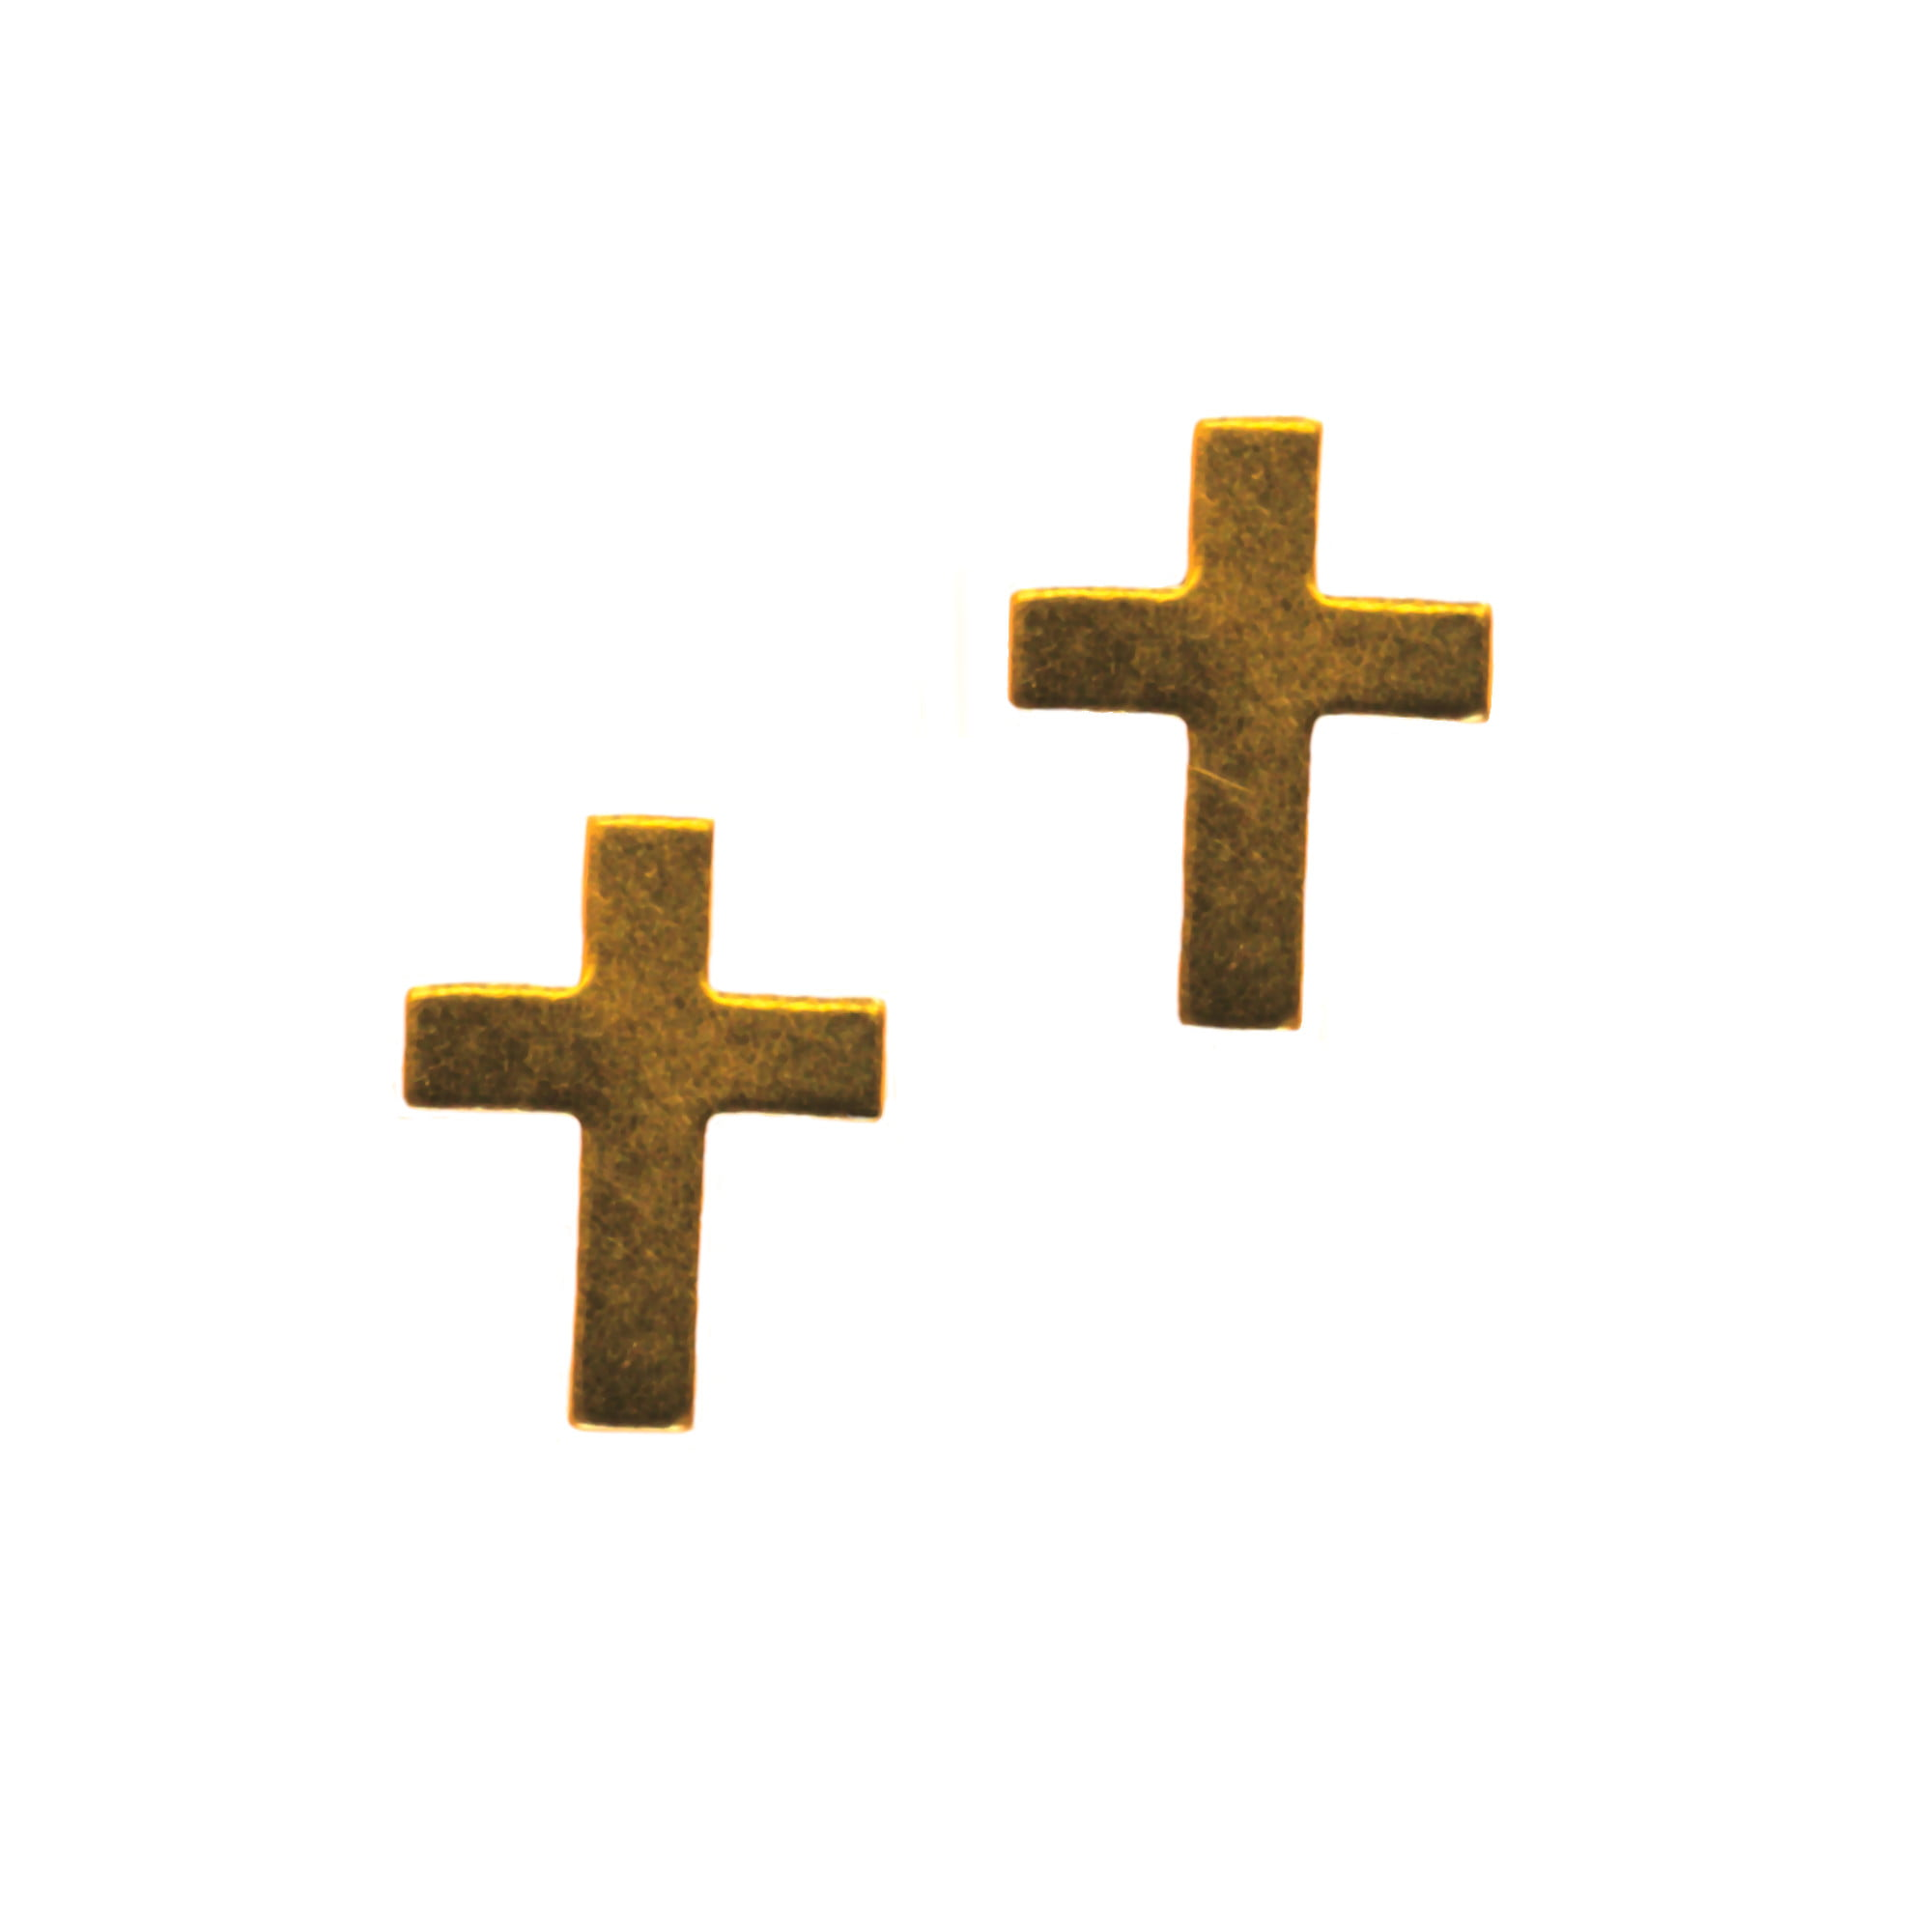 Small religious cross stud earrings in 9ct yellow gold